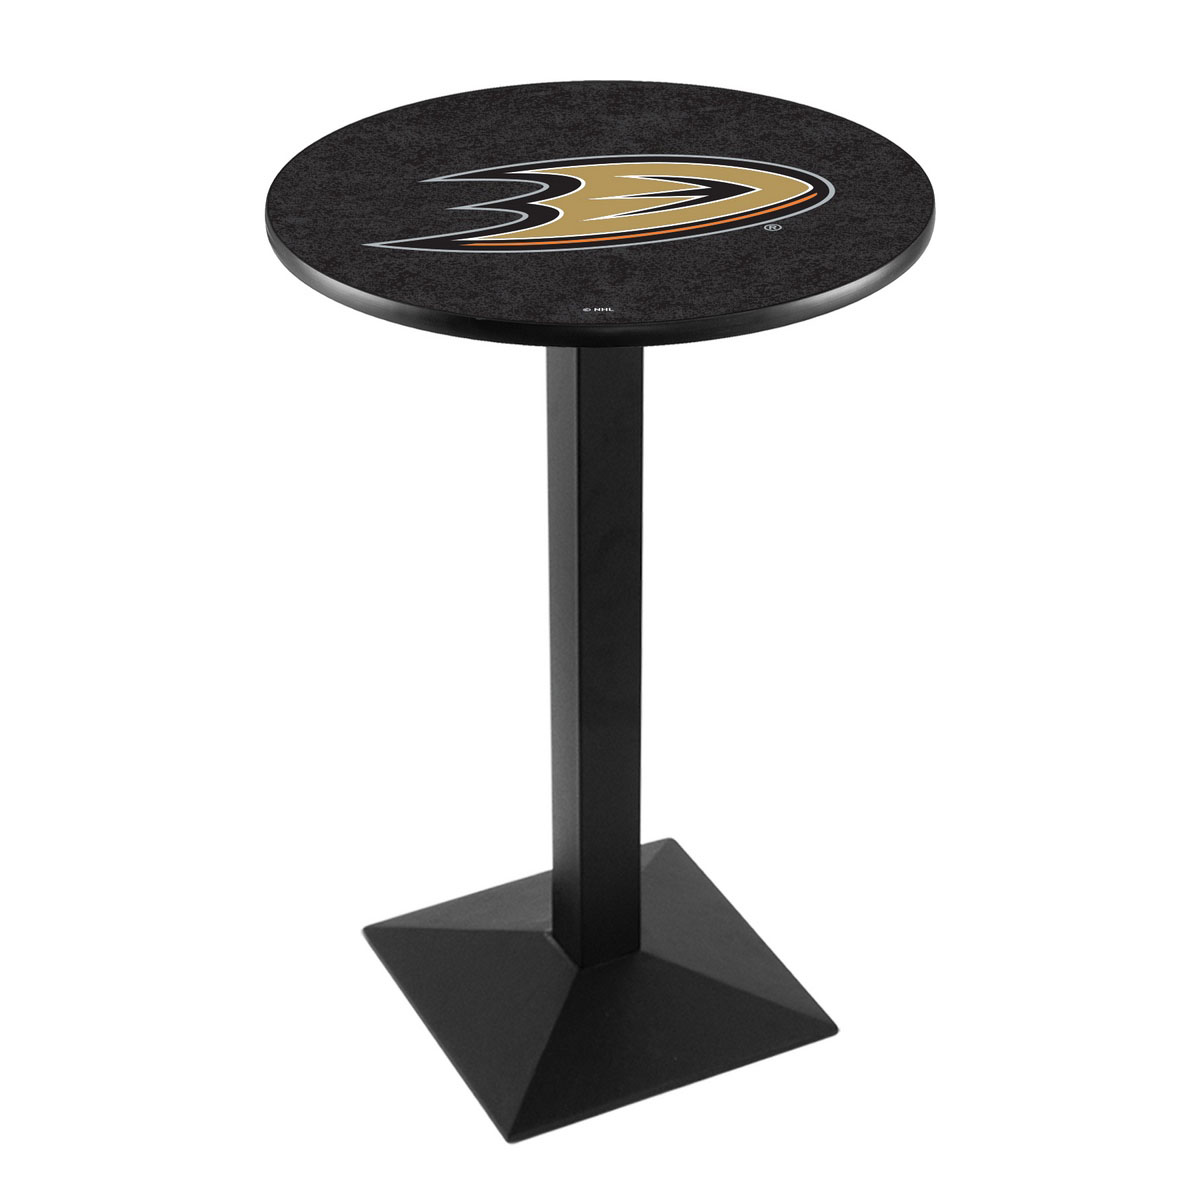 Reliable Anaheim Ducks Logo Pub Bar Table Square Stand 26 1845